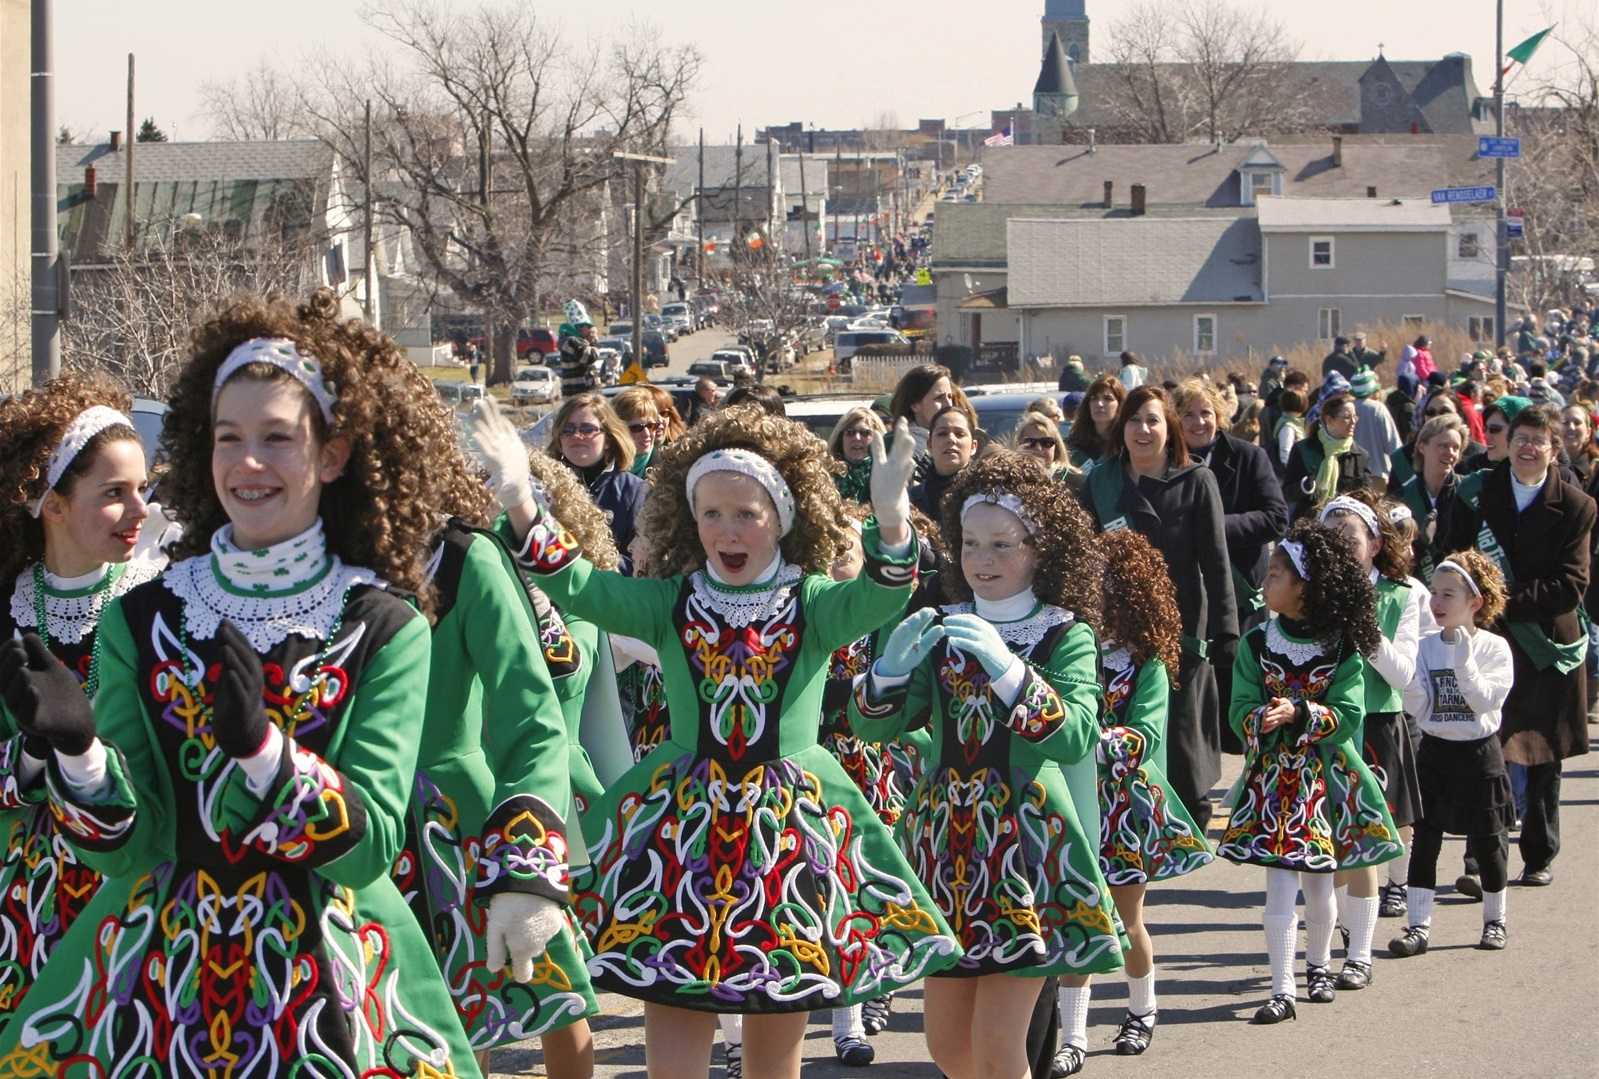 A scene at the Old Neighborhood St. Patrick's Day Parade in 2009, as Rince na Tiarna Irish dancers take part in the parade. (Derek Gee/Buffalo News file photo)